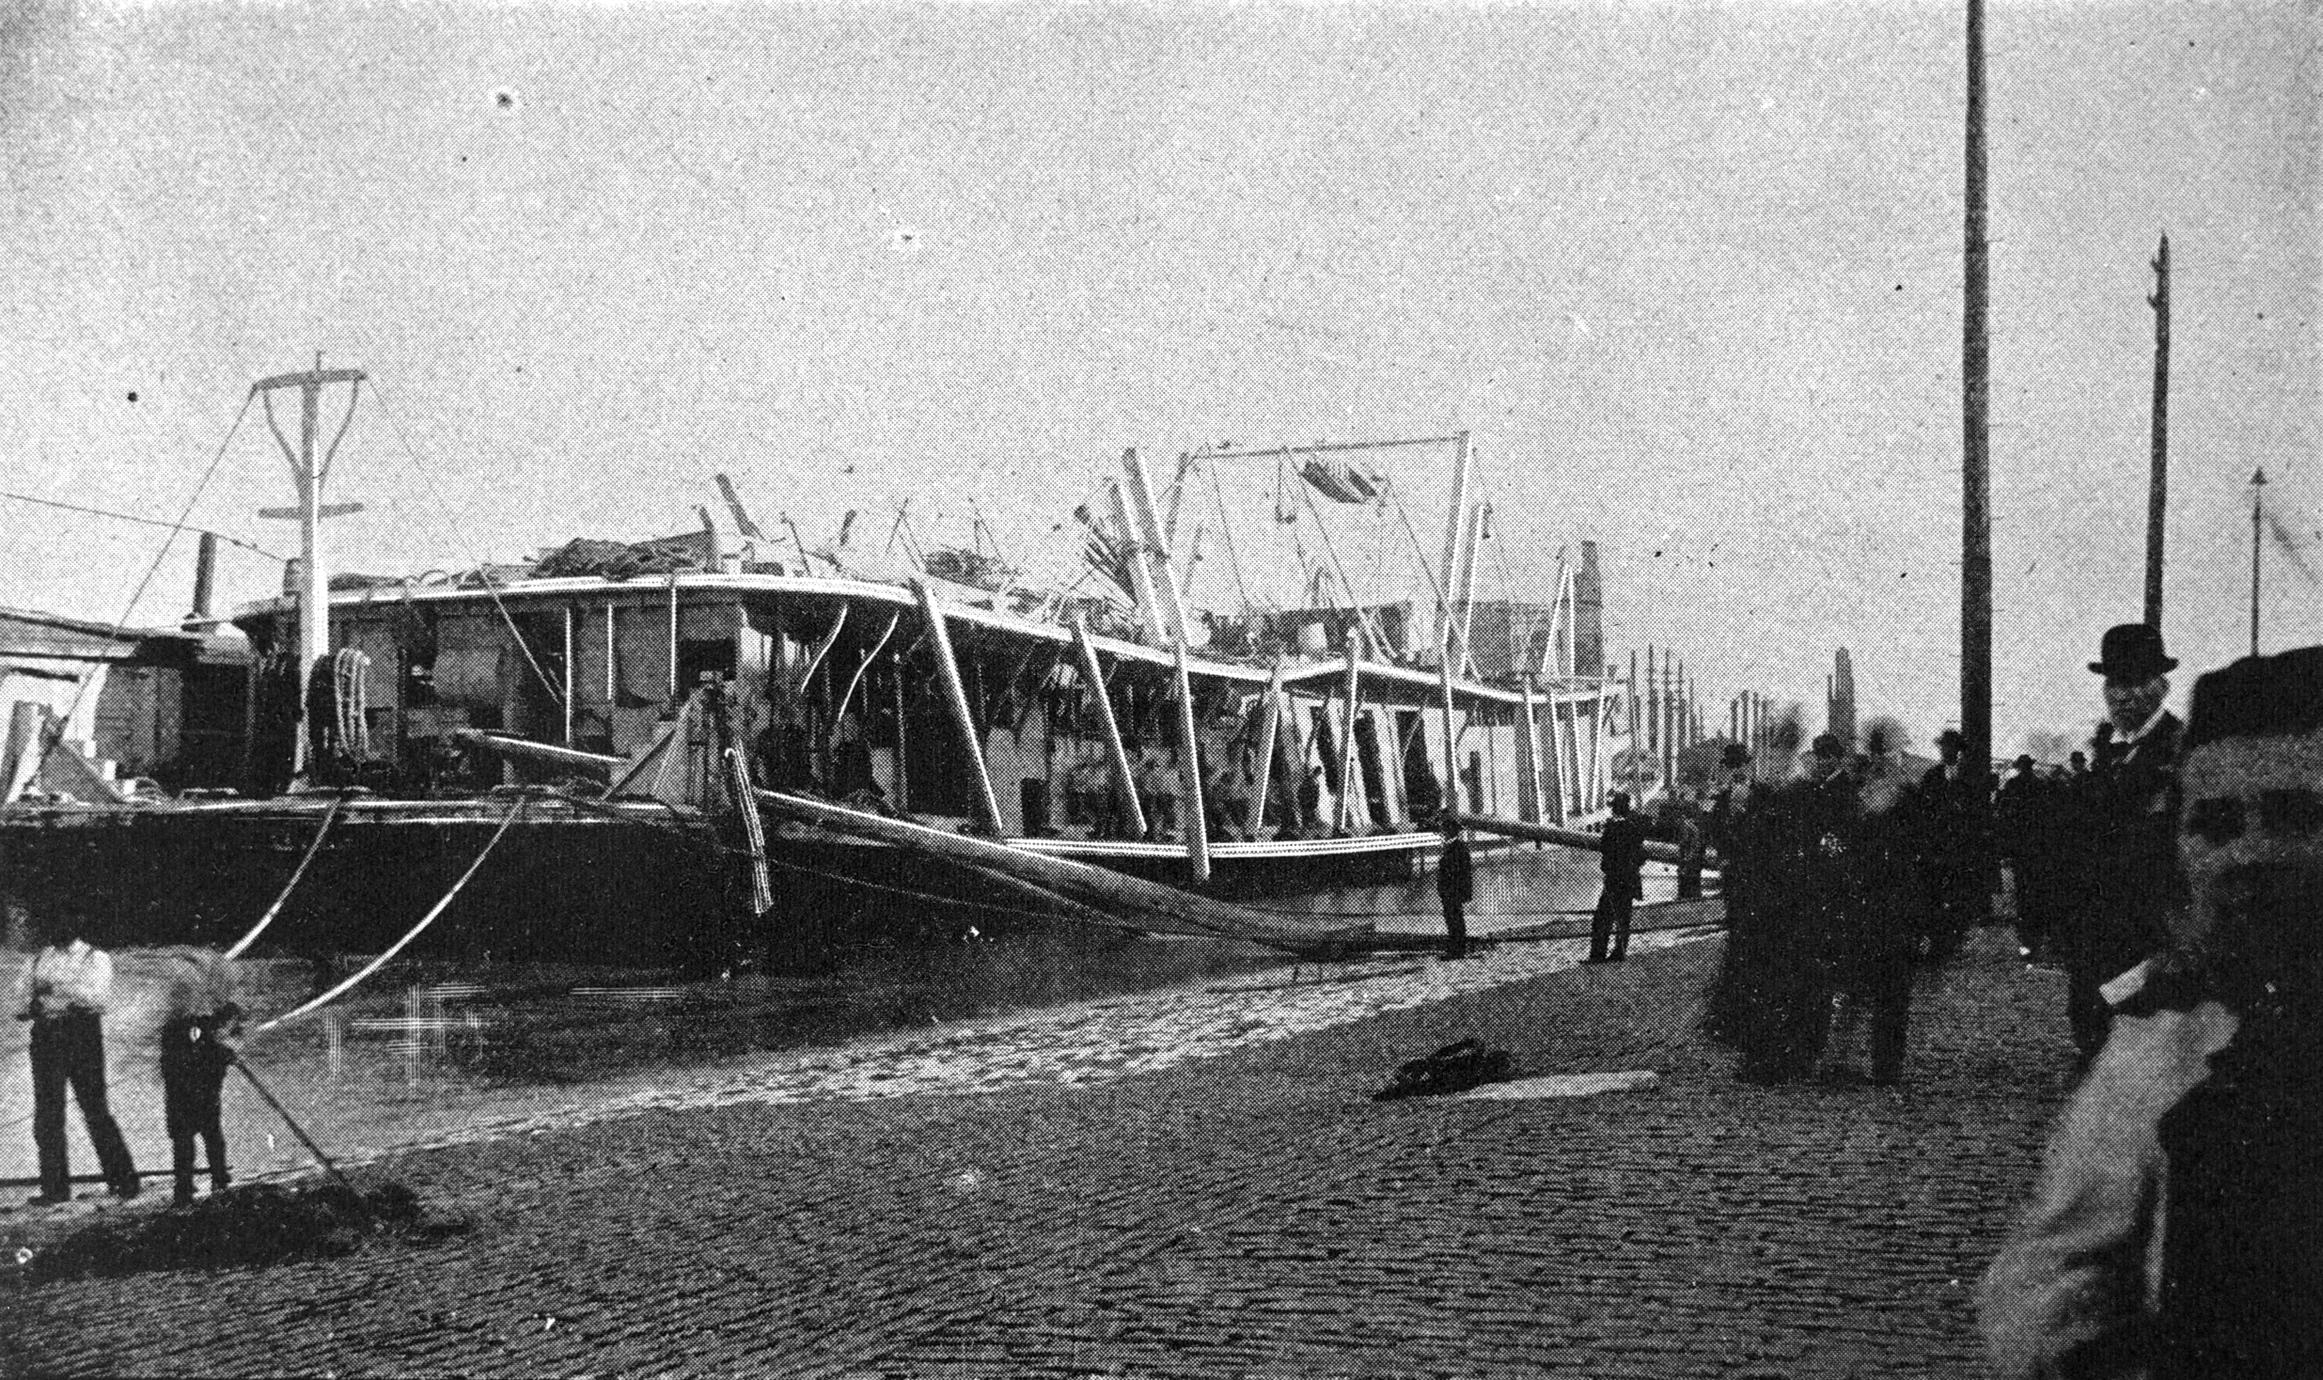 Exporter (Towboat, 1895-1936)